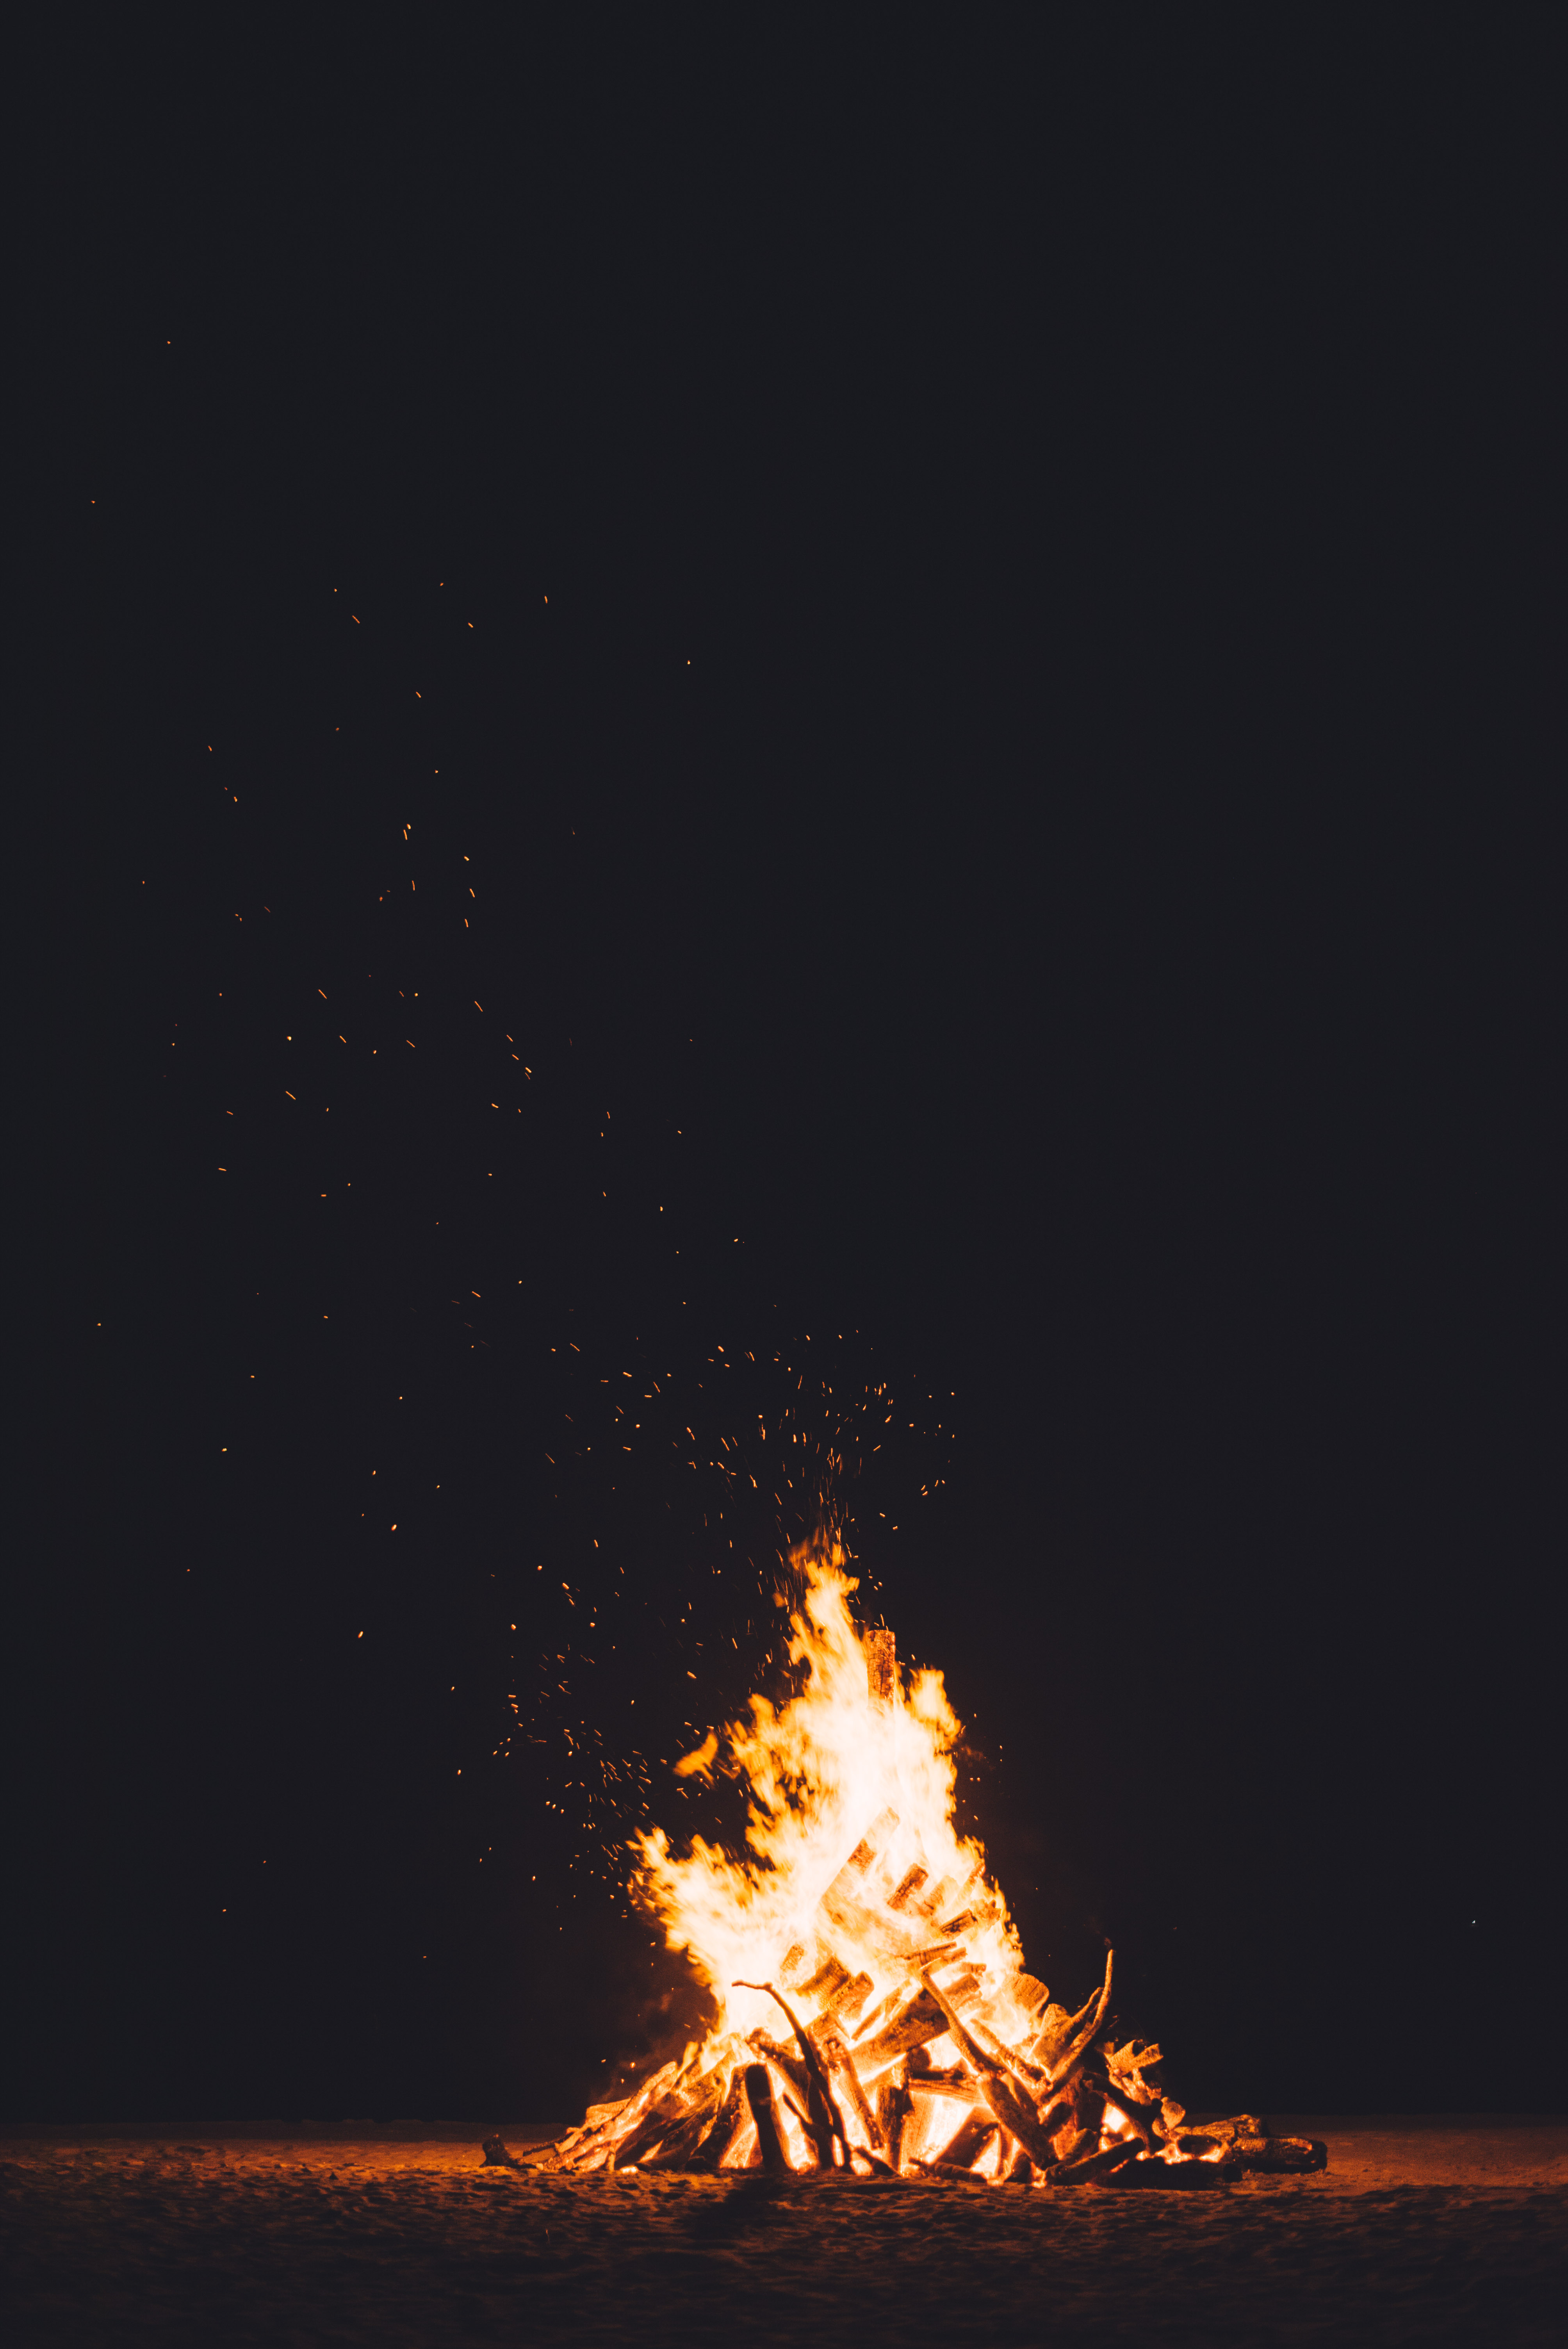 Campfire at night, fire, fire, flame, flare, burning logs